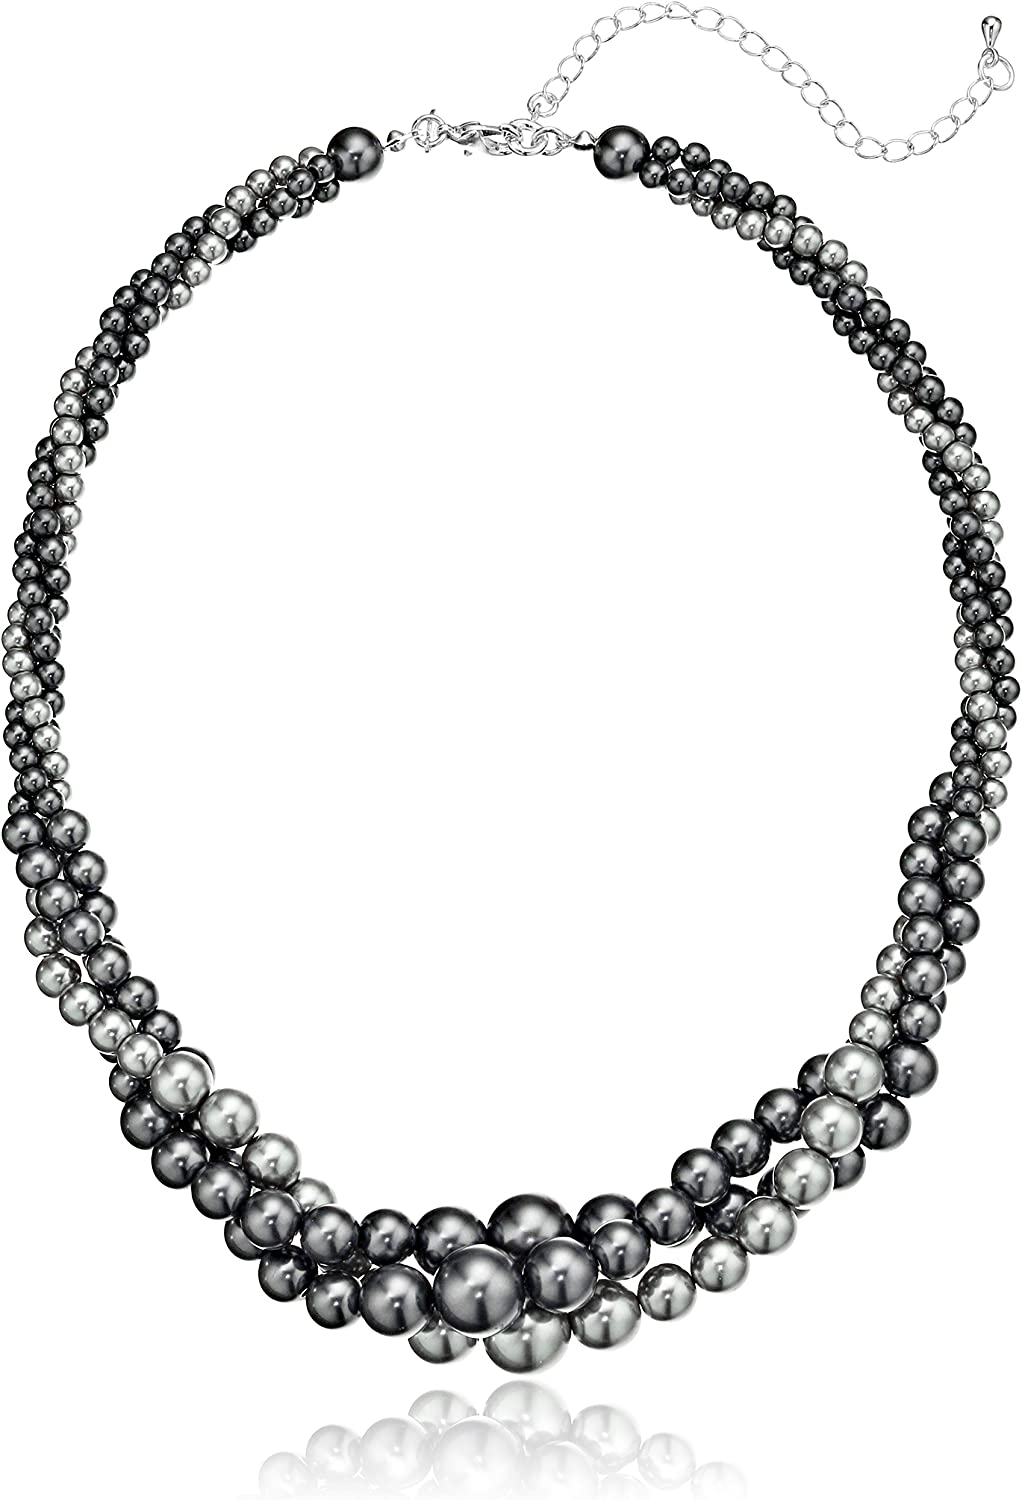 Gold Tone Grey Simulated Three Strand Twisted Pearl Necklace, 18 + 2